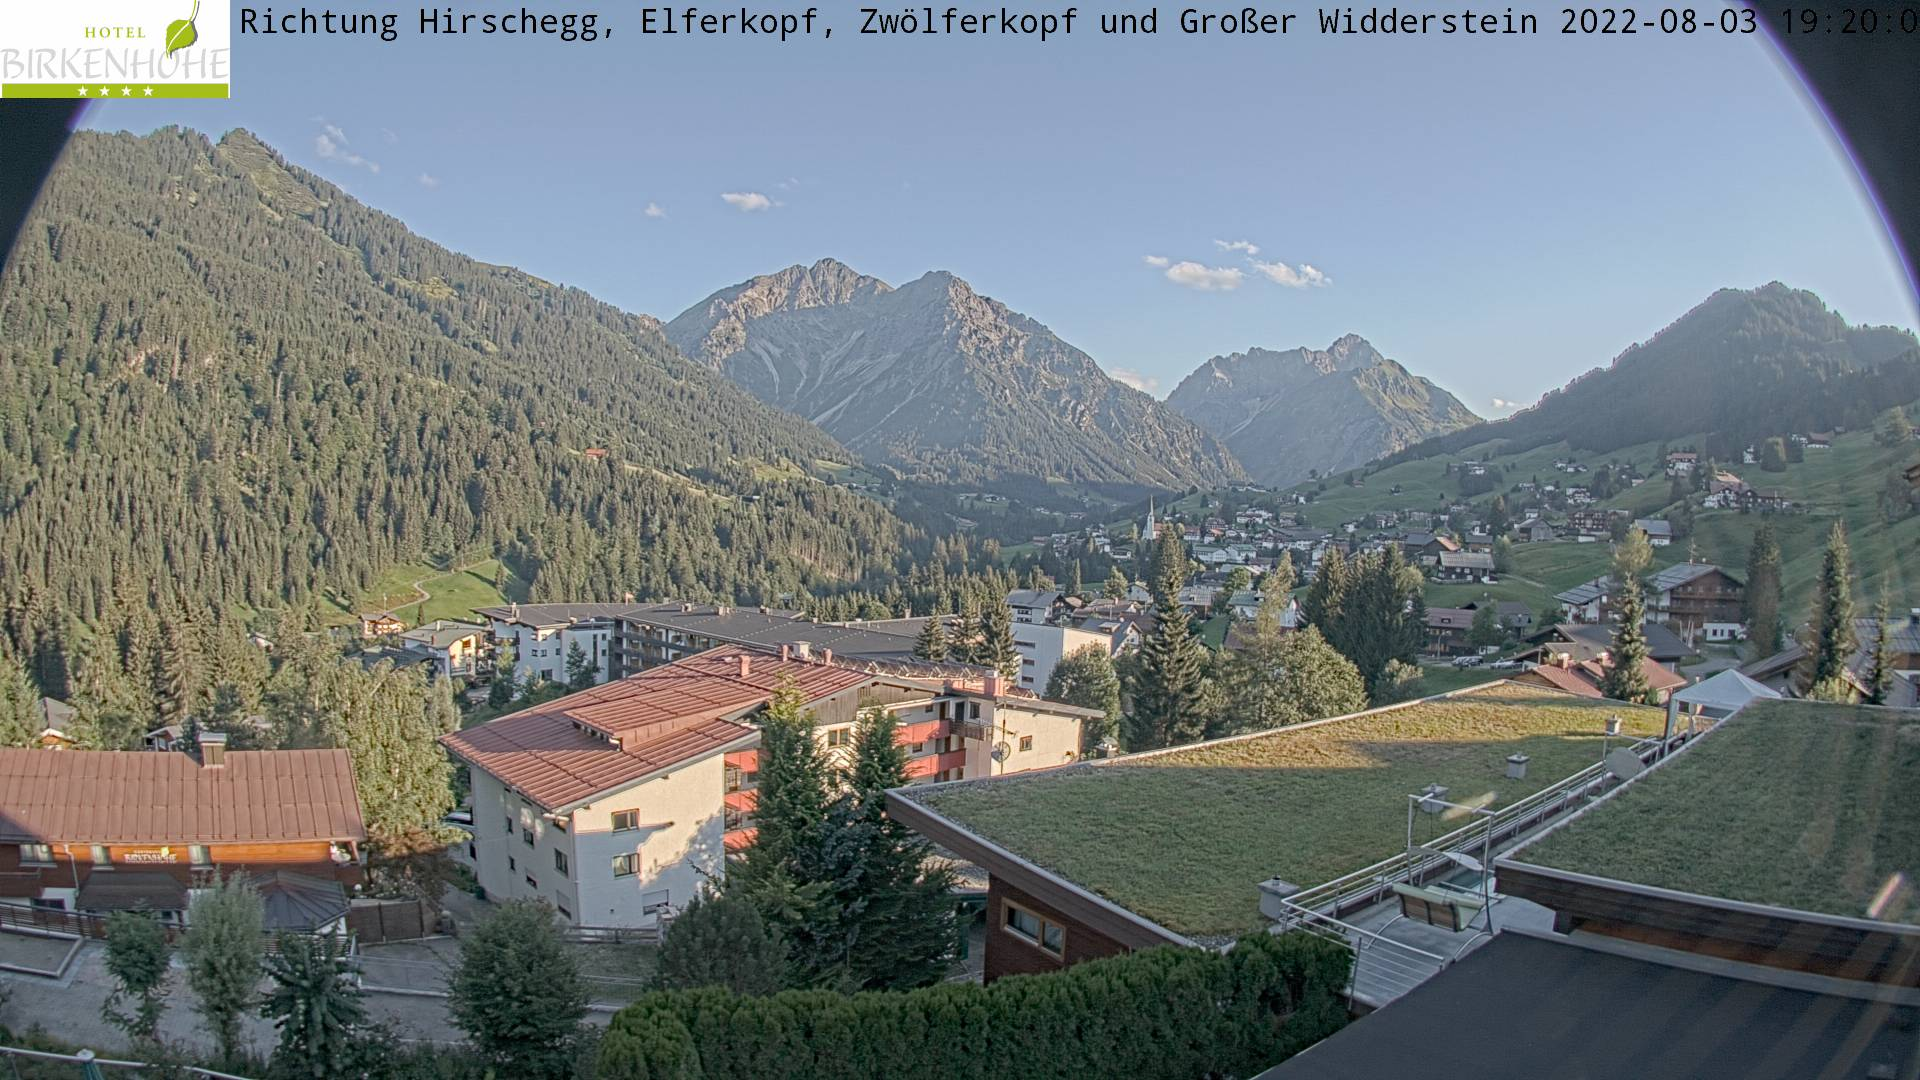 Webcam-Bild: Webcam - Hotel Birkenhöhe